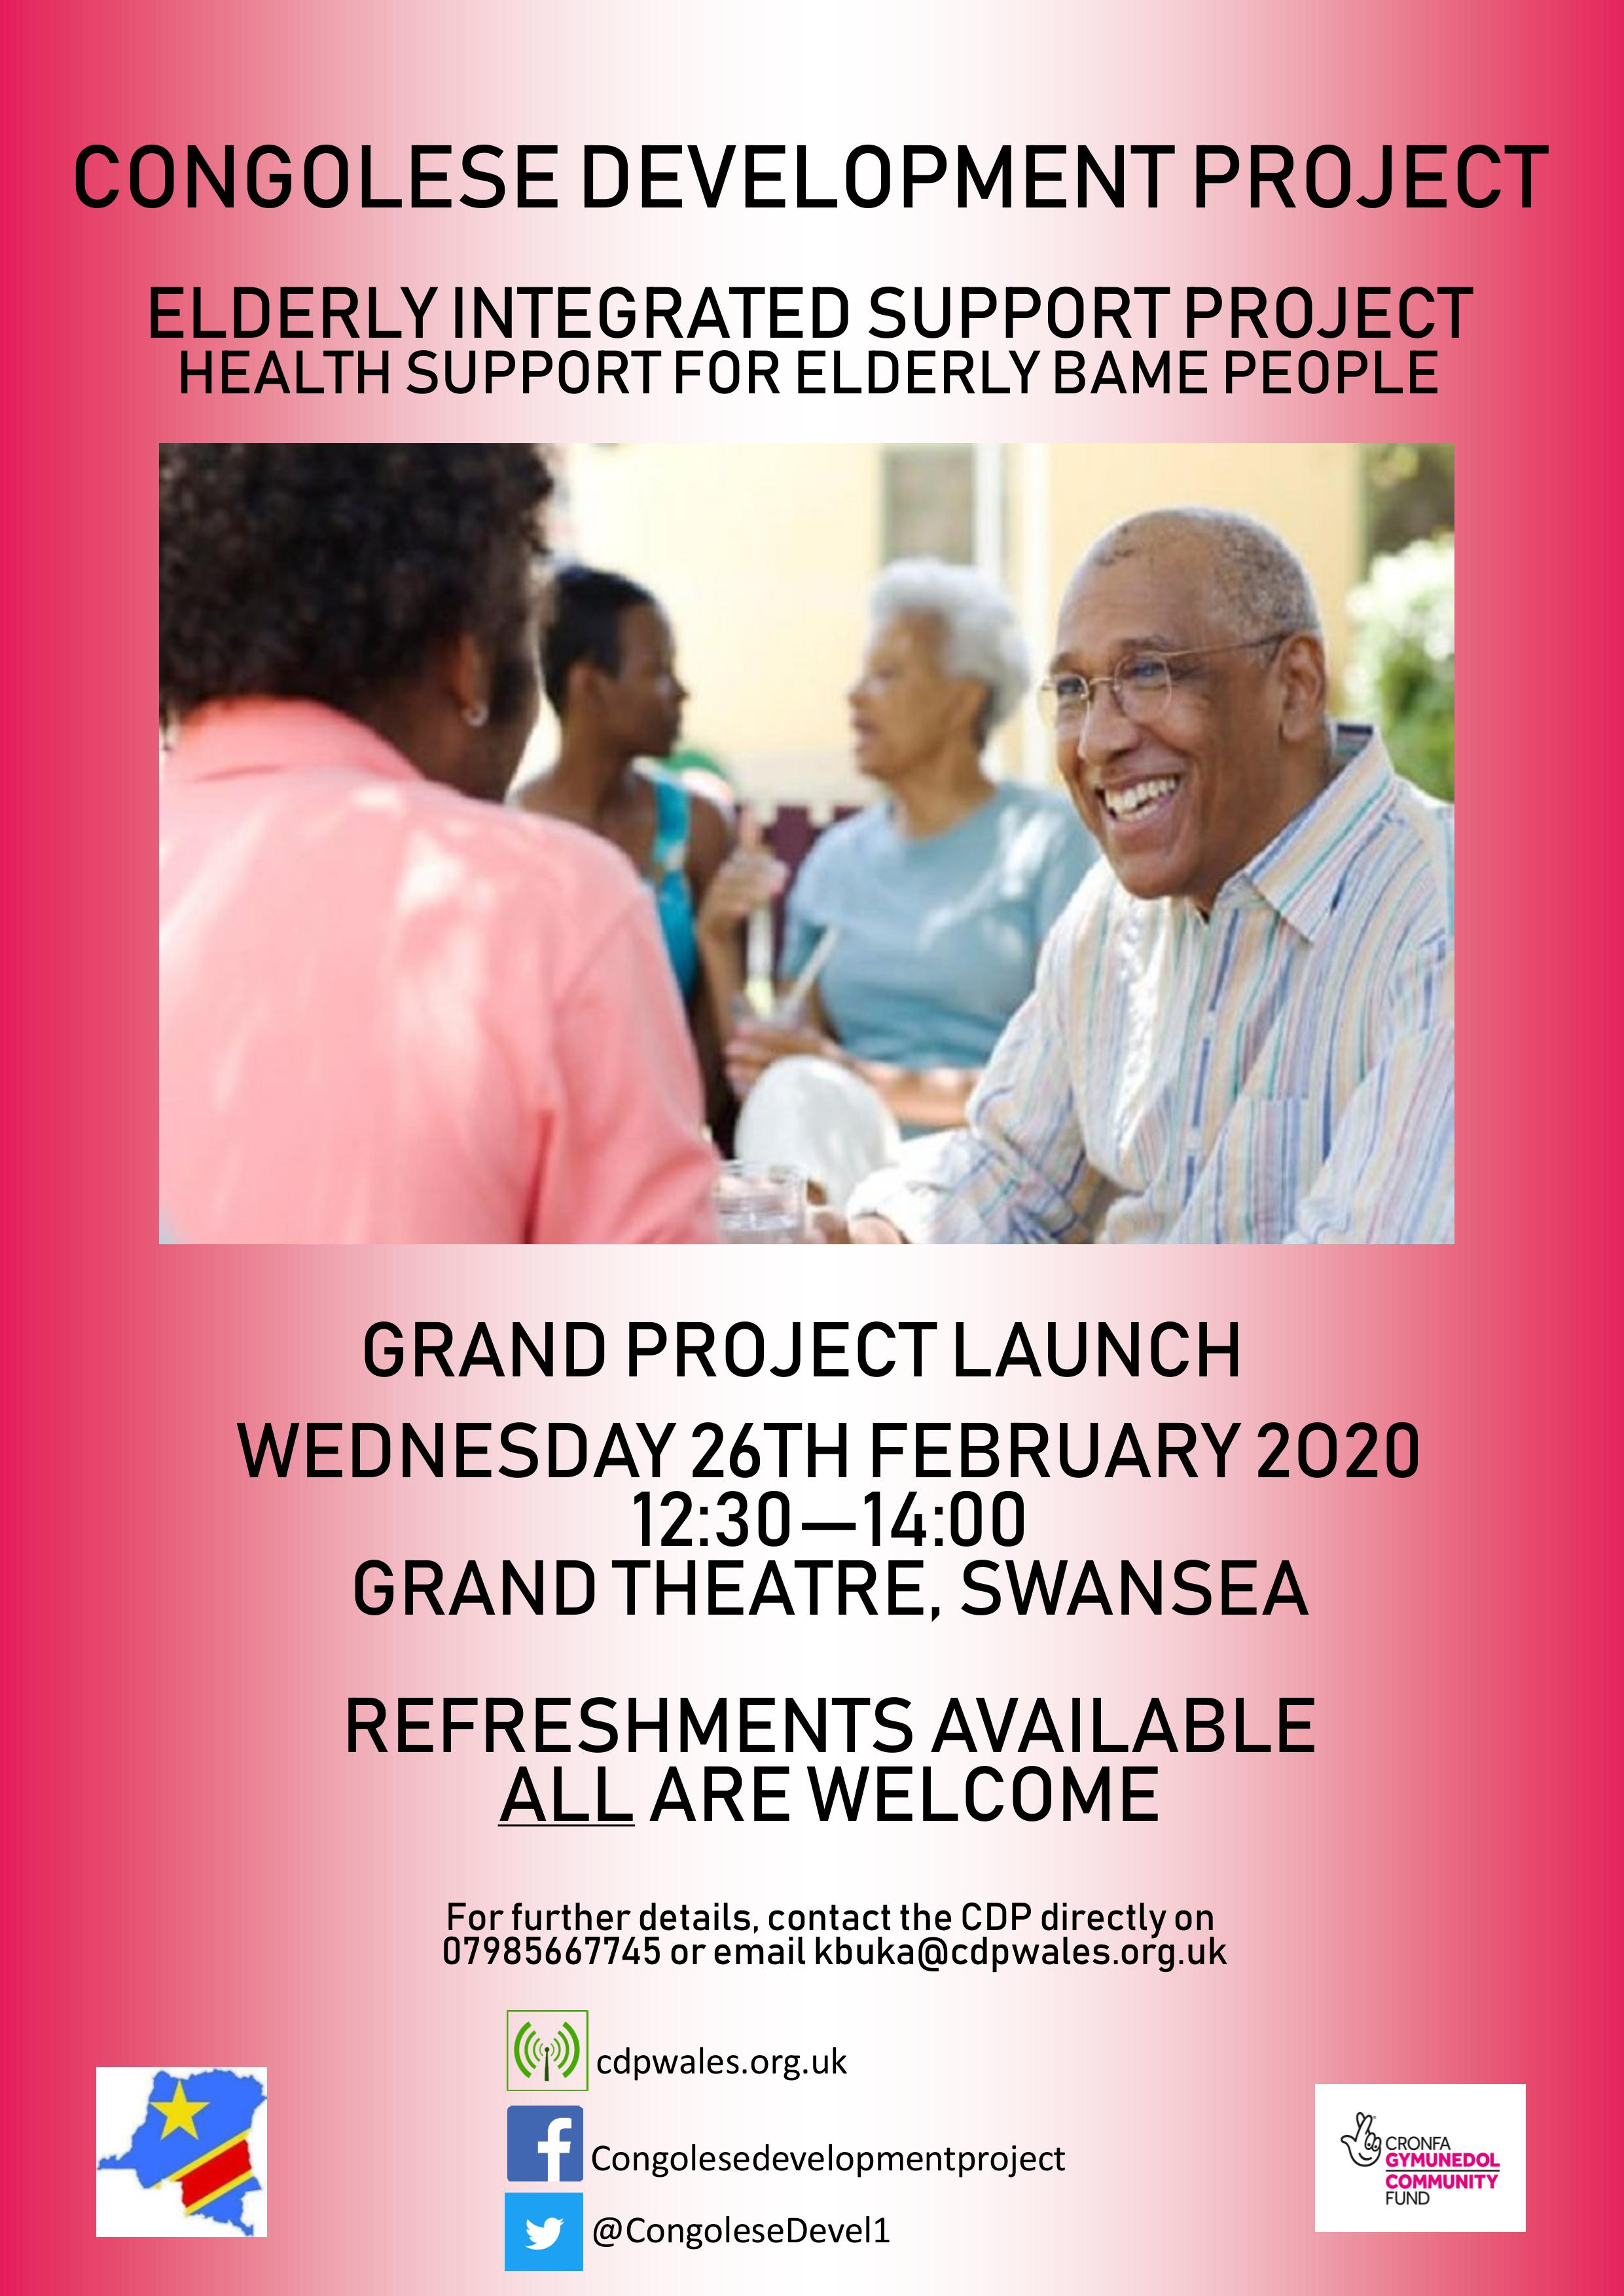 Health Support For Elderly BAME People